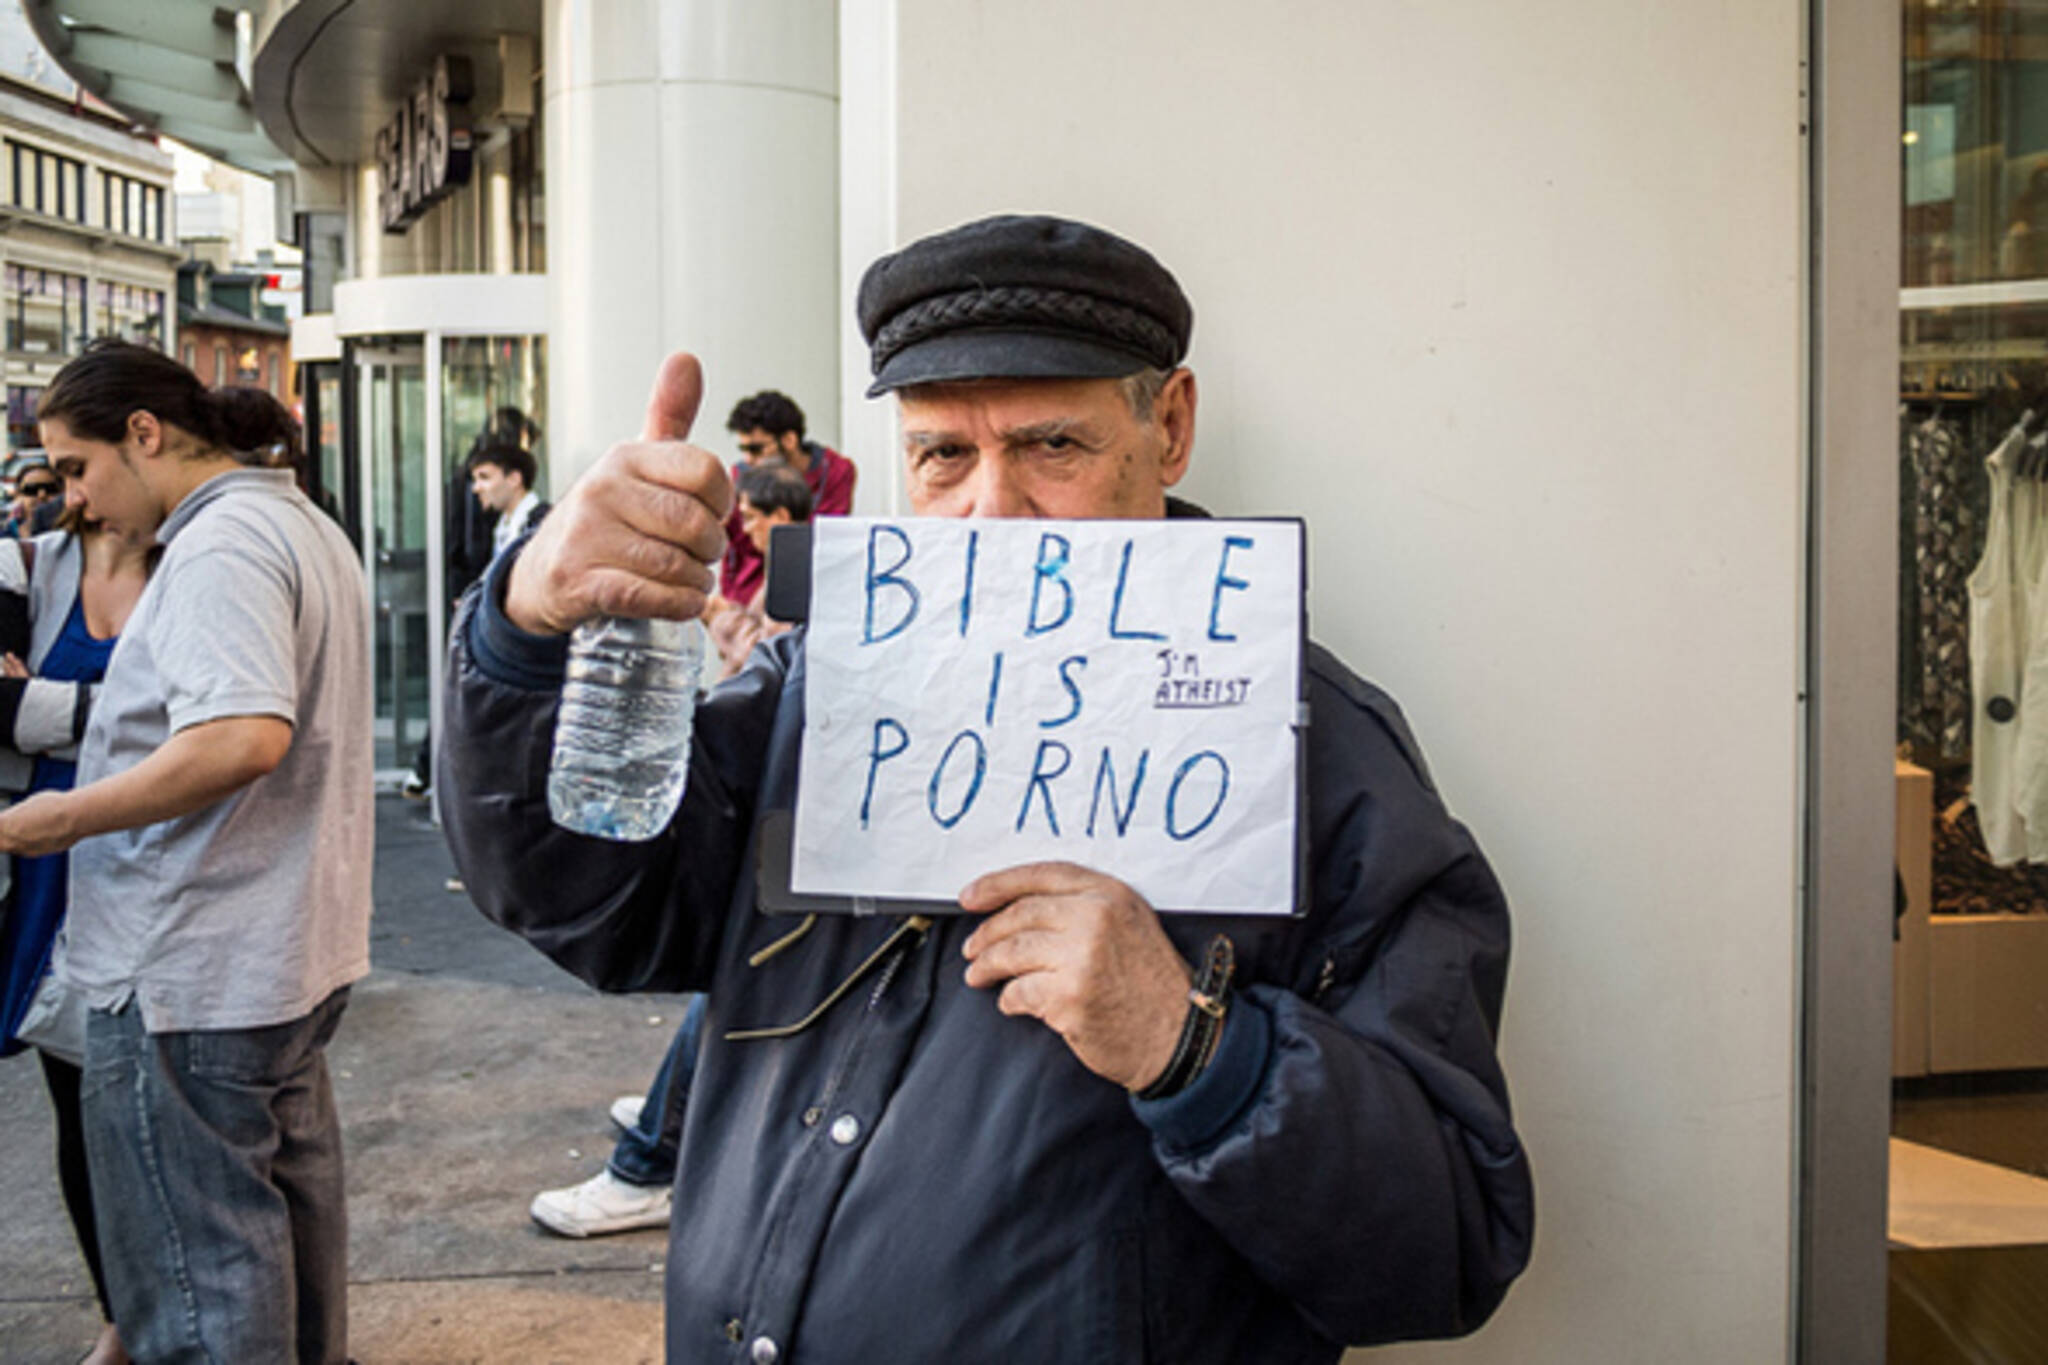 Bible is Porno